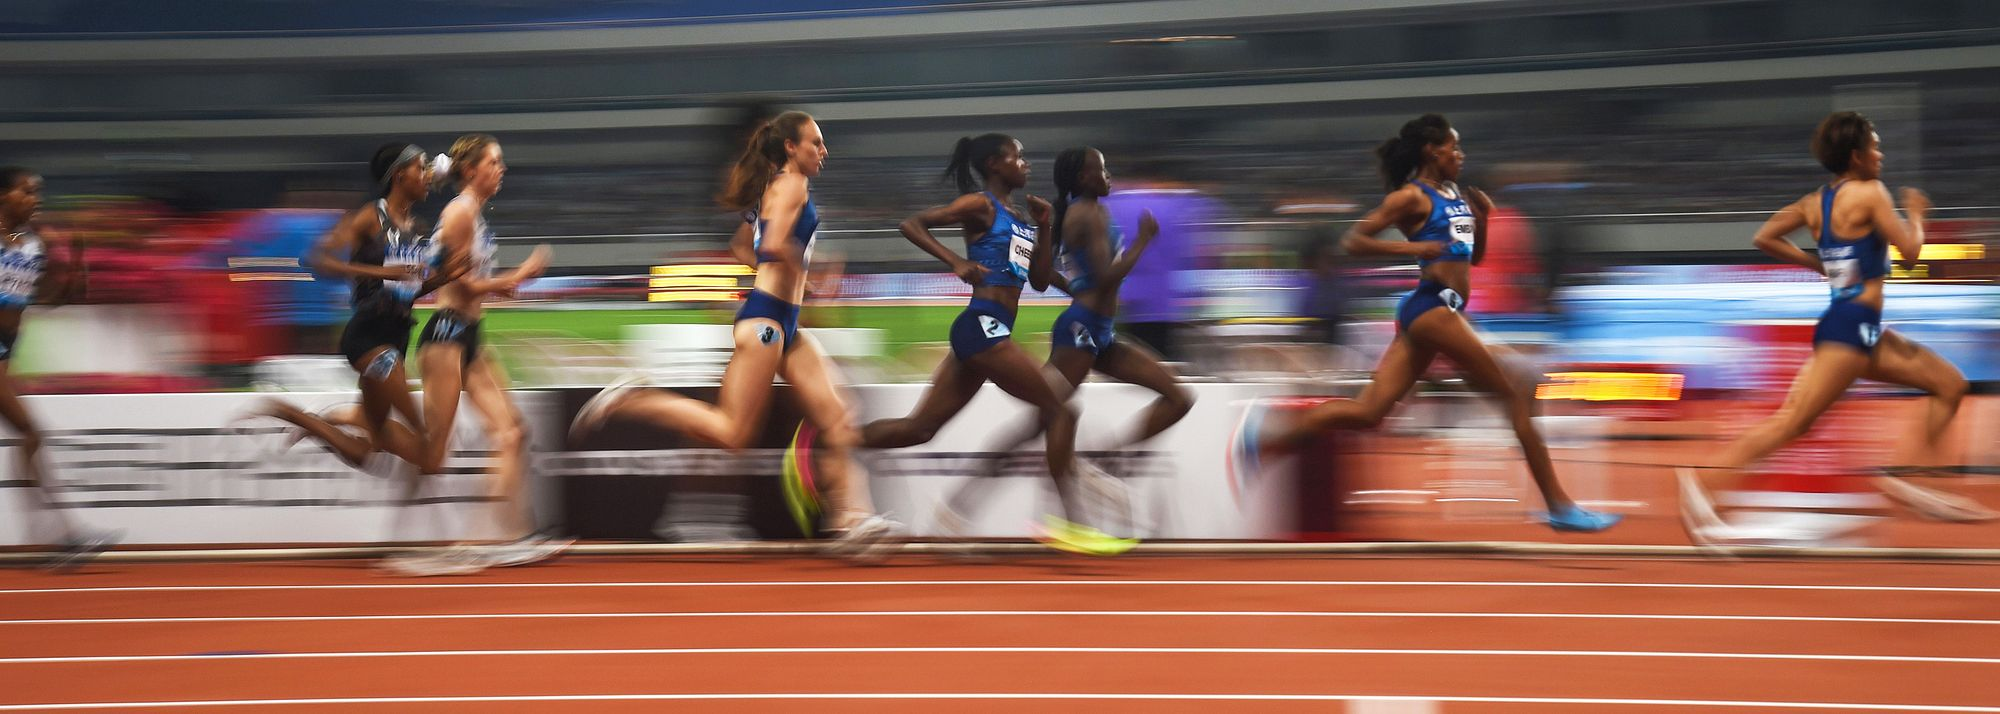 Due to the combination of travel restrictions and strict quarantine requirements currently in place for entry into China, as well as the Olympic Games and other Wanda Diamond League meetings, both Chinese meetings in the series are not able to be rescheduled into a busy summer programme.